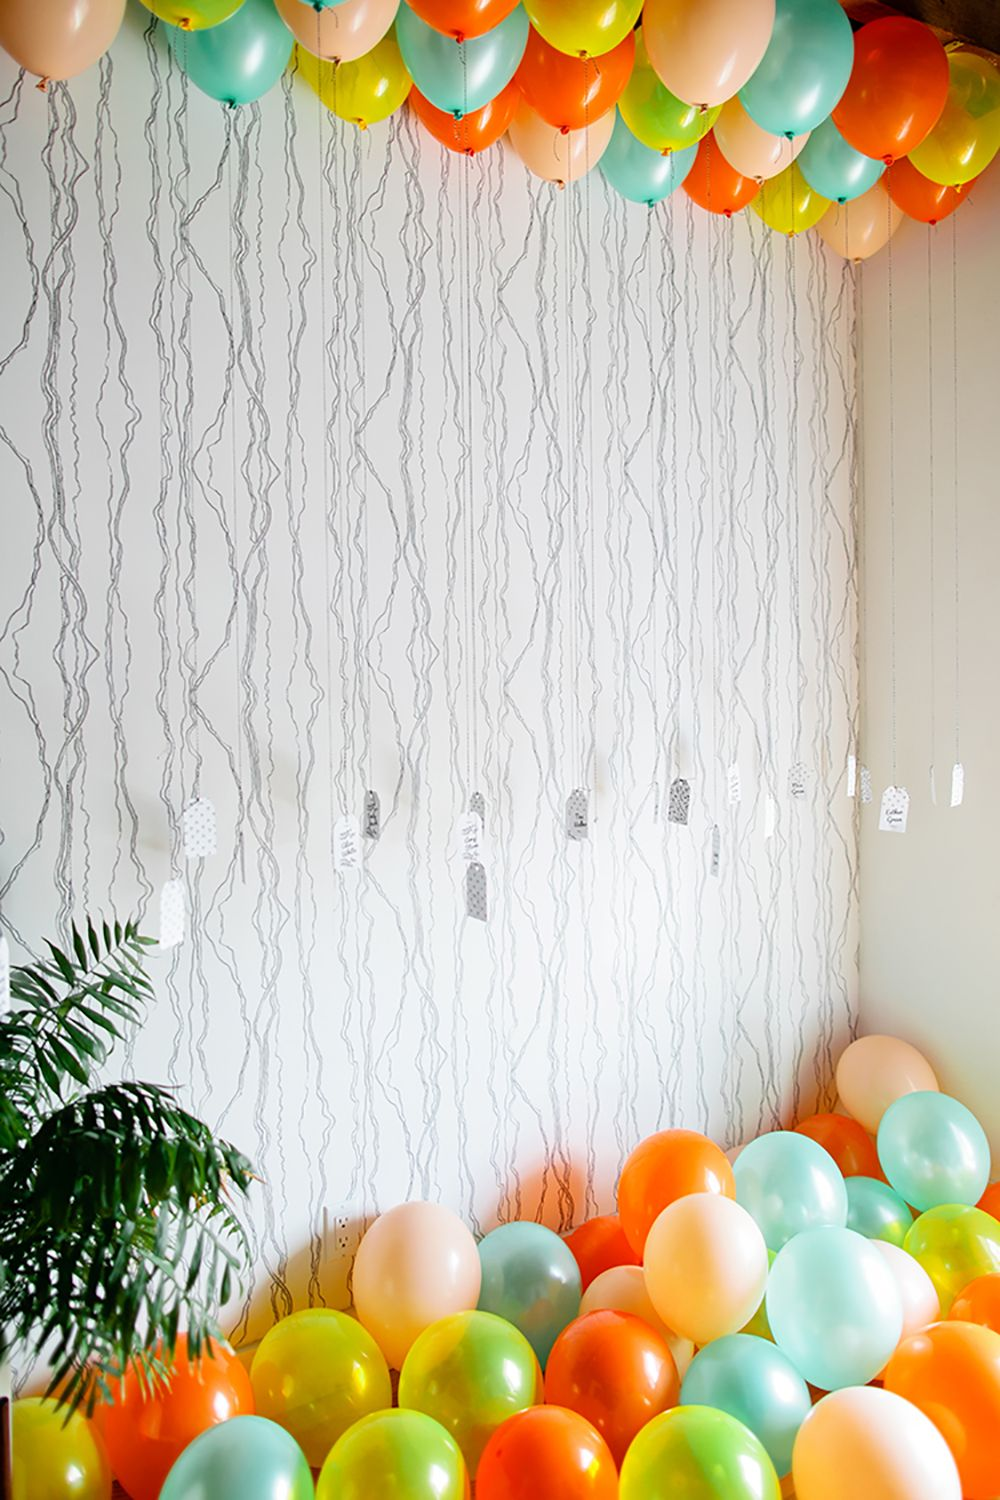 Balloon Ceiling DIY with Free Tag Printables | Balloon ...